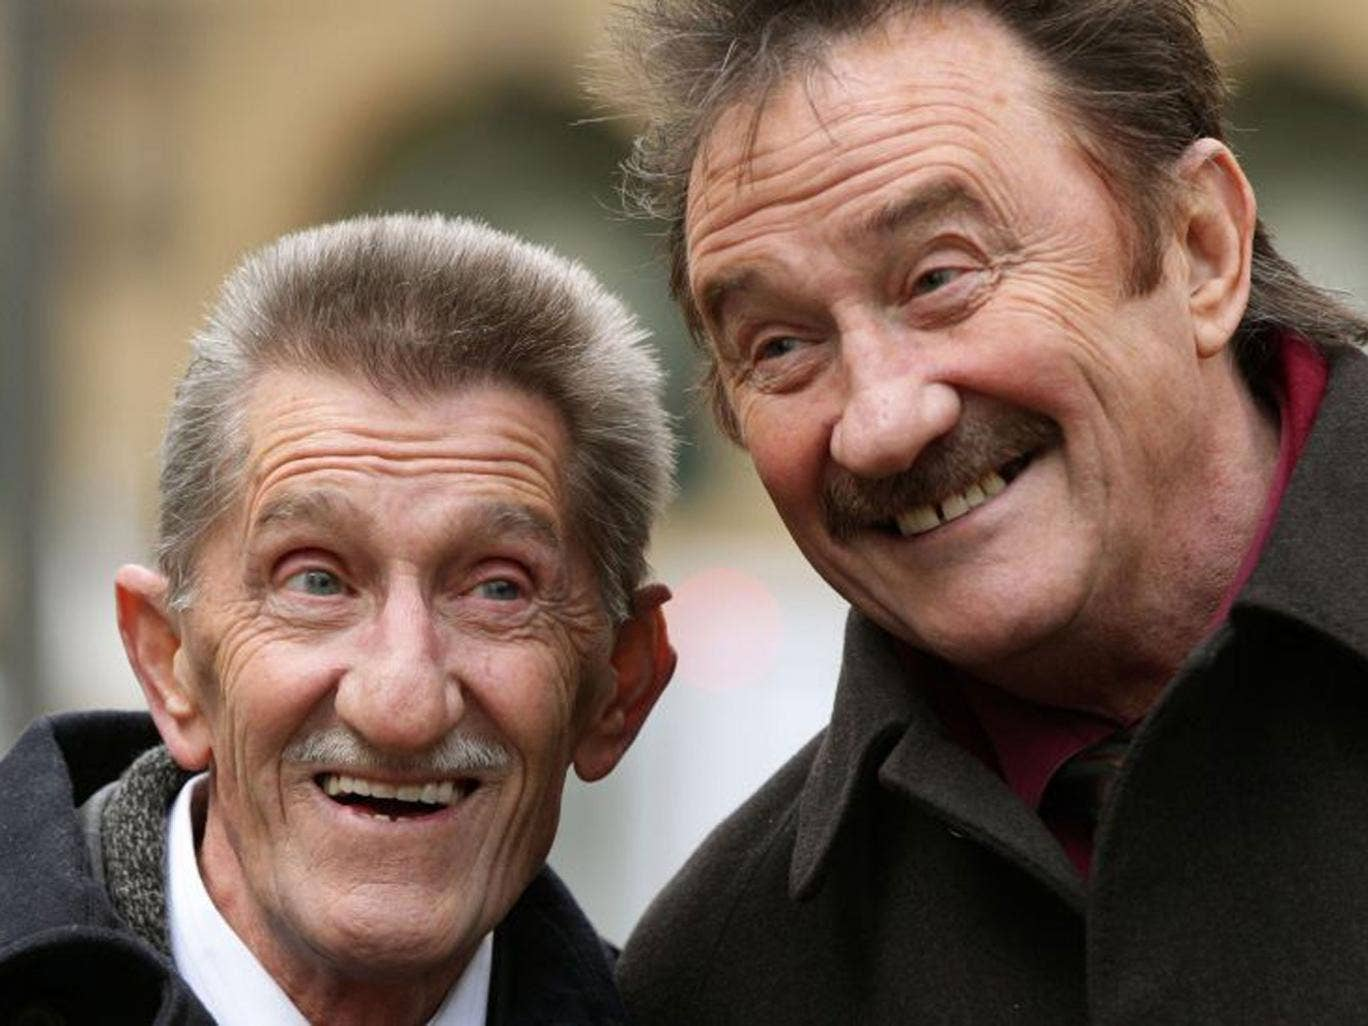 The Chuckle Brothers, Barry (left) and Paul Elliott gave evidence at Southwark Crown Court in London during the trial of Former DJ Dave Lee Travis